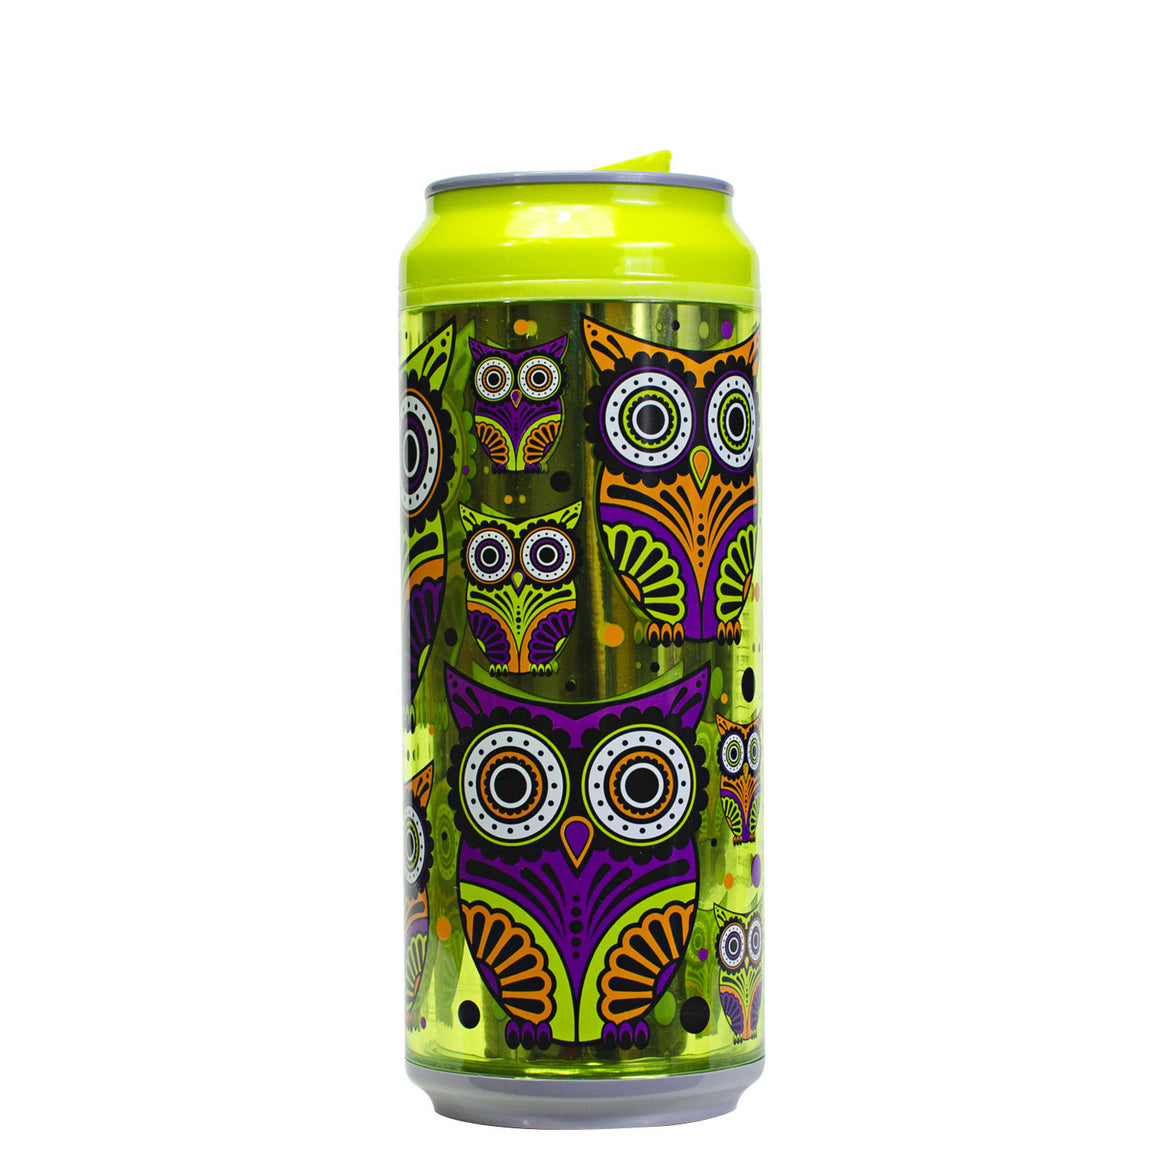 Green / Owls At Night 16 Oz Halloween Coolgearcan at Cool Gear Halloween